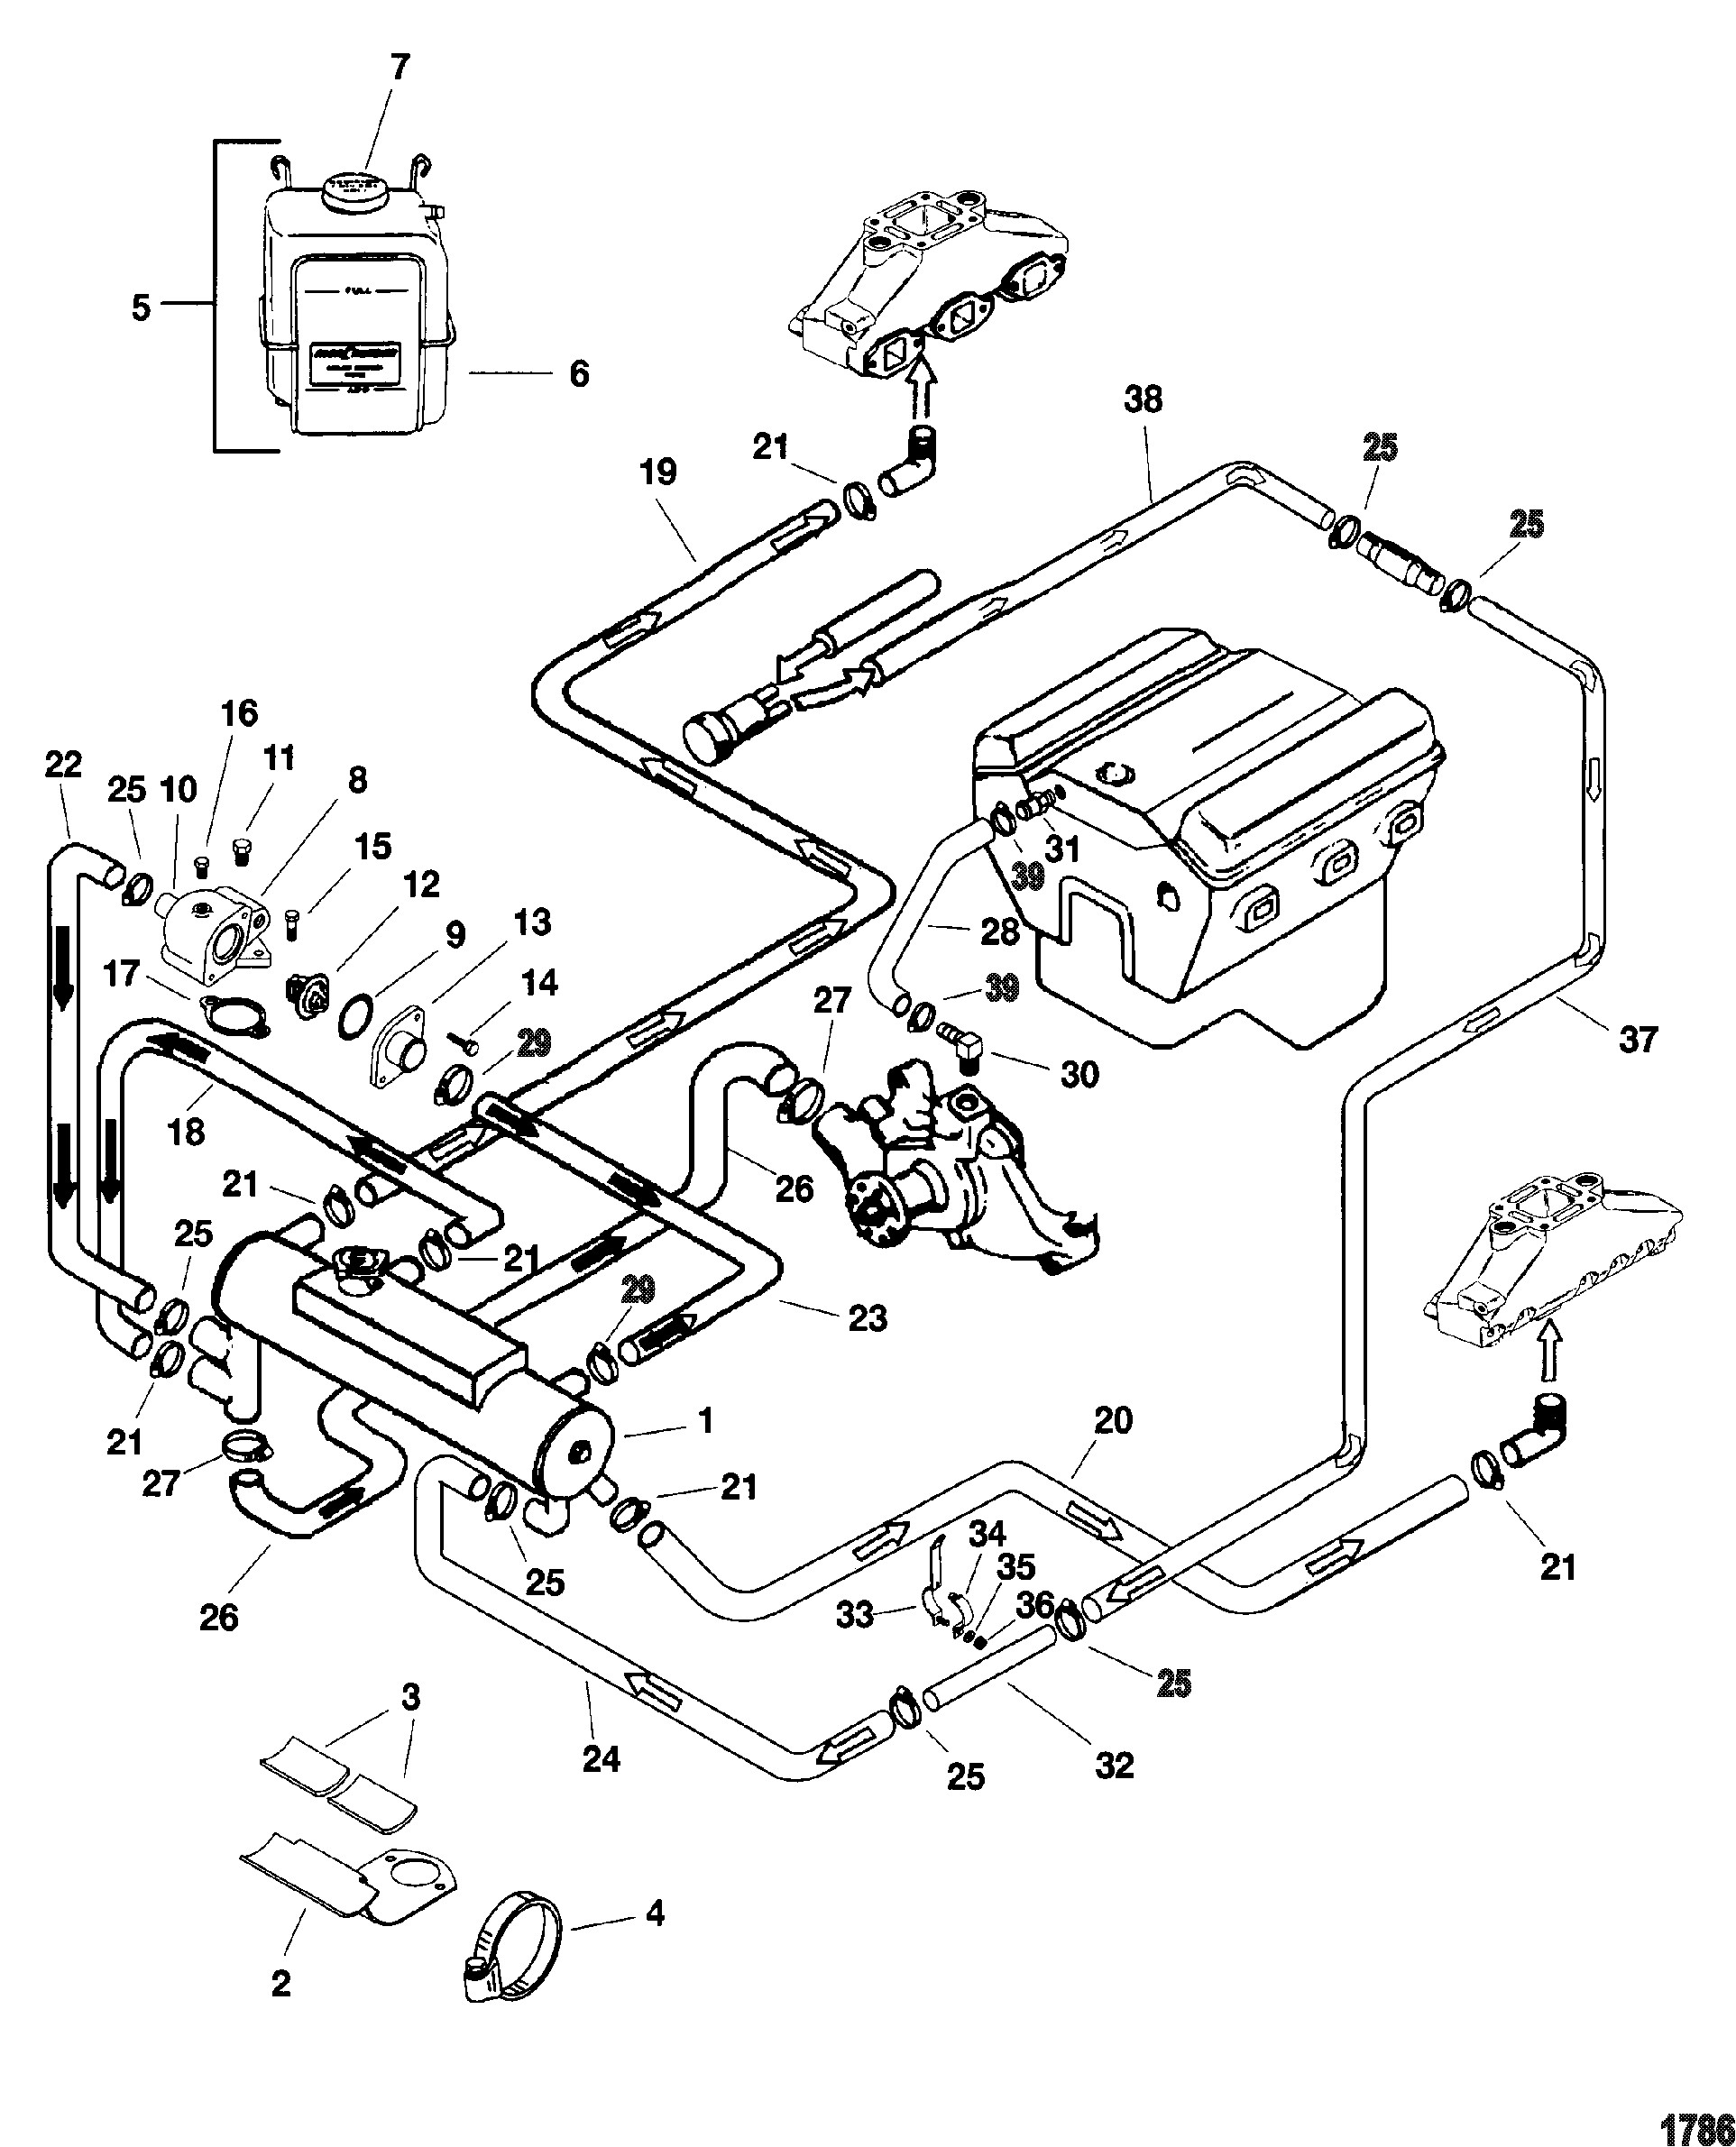 hight resolution of 2008 gmc acadia 3 6 engine diagram wiring diagrams konsult 2007 gmc acadia engine diagram